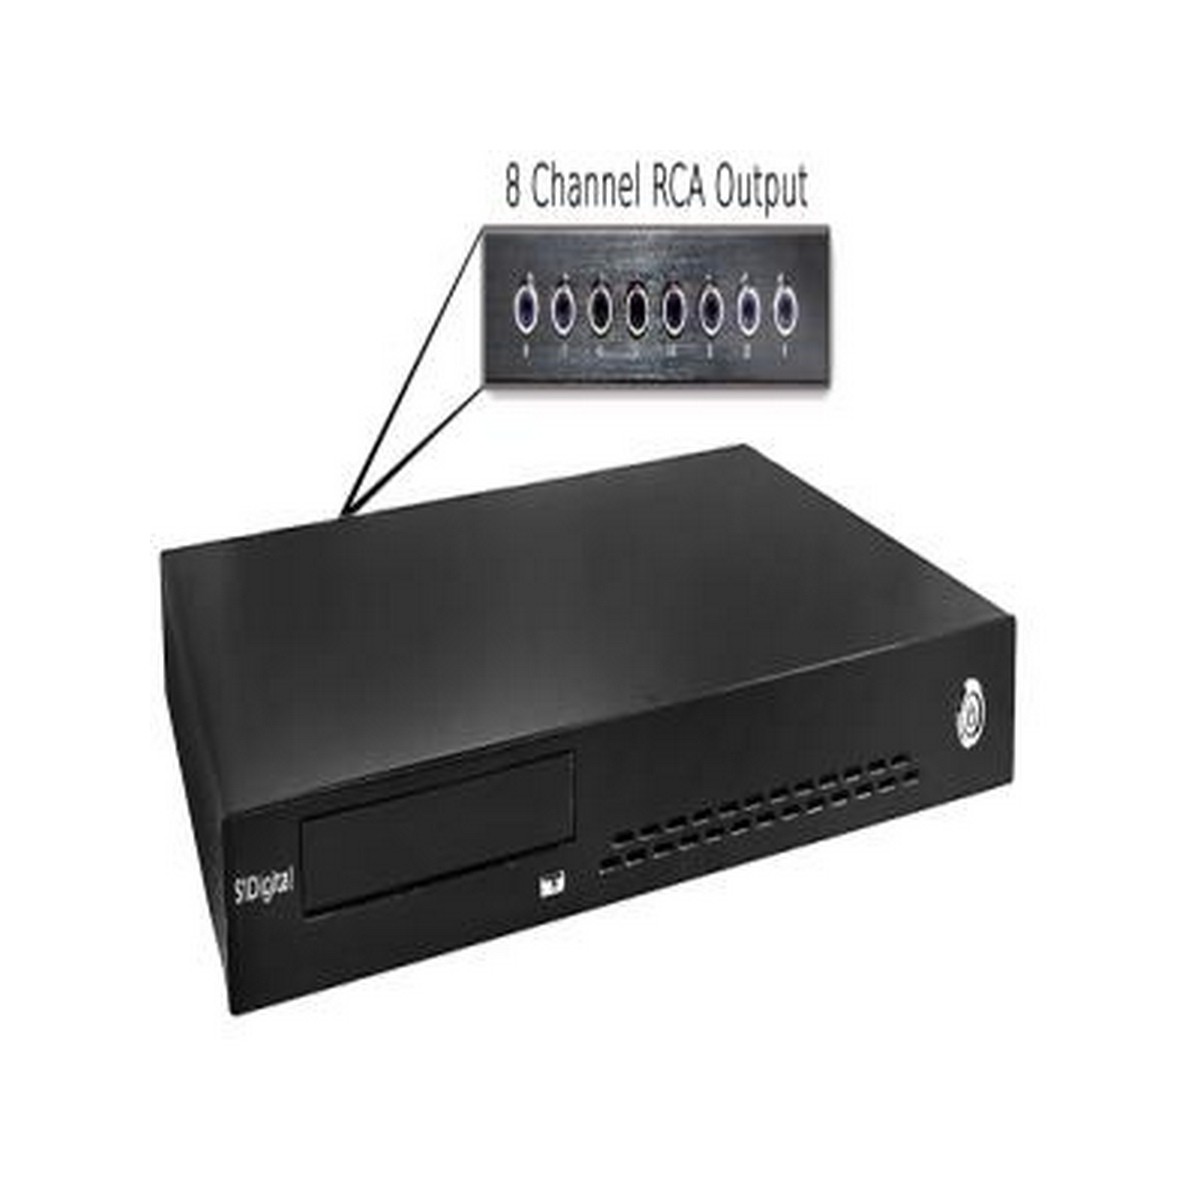 S1 Digital H8CD-Reference-4TB Eight Zone Reference Audio Server With CD Ripper & 4TB HDD Multiple Analog & Digital Outputs